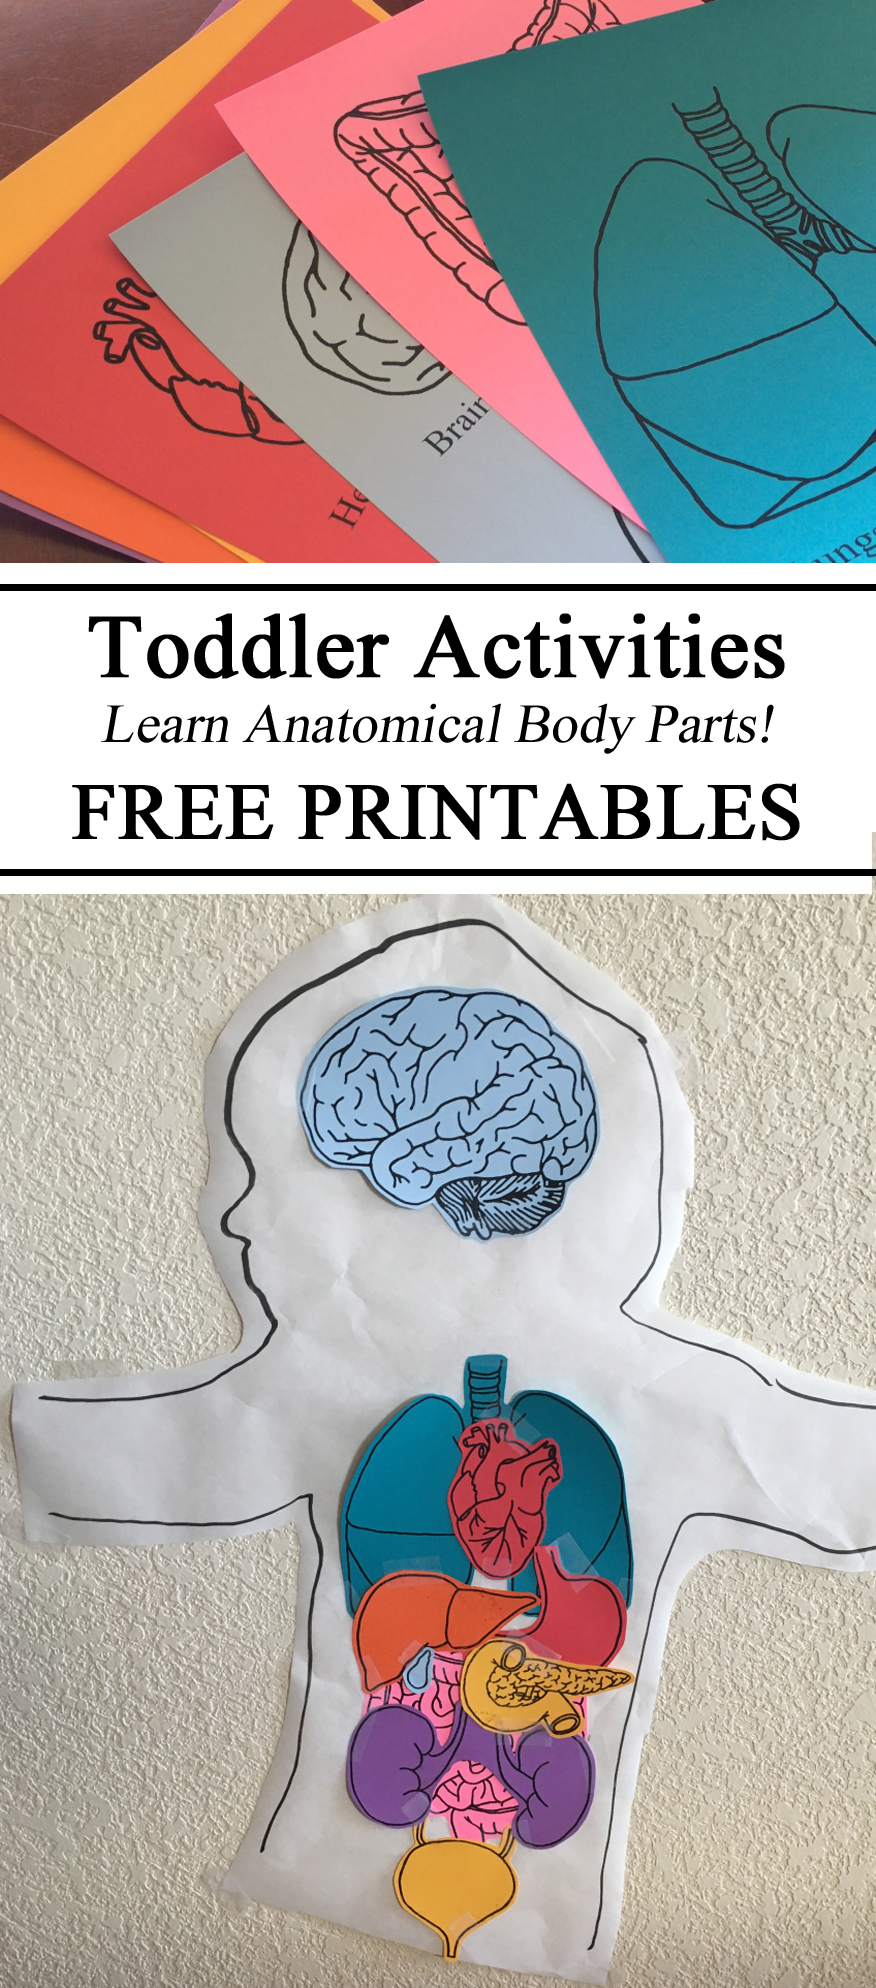 Anatomy & Physiology, My Body Unit, Anatomy Unit, Major Body Parts, Body Tracing, Preschool, Kindergarten, Montessori, Montessori Inspired, Homeschooling, Homeschool, Educational, Teacher Resources, Parent Inspiration